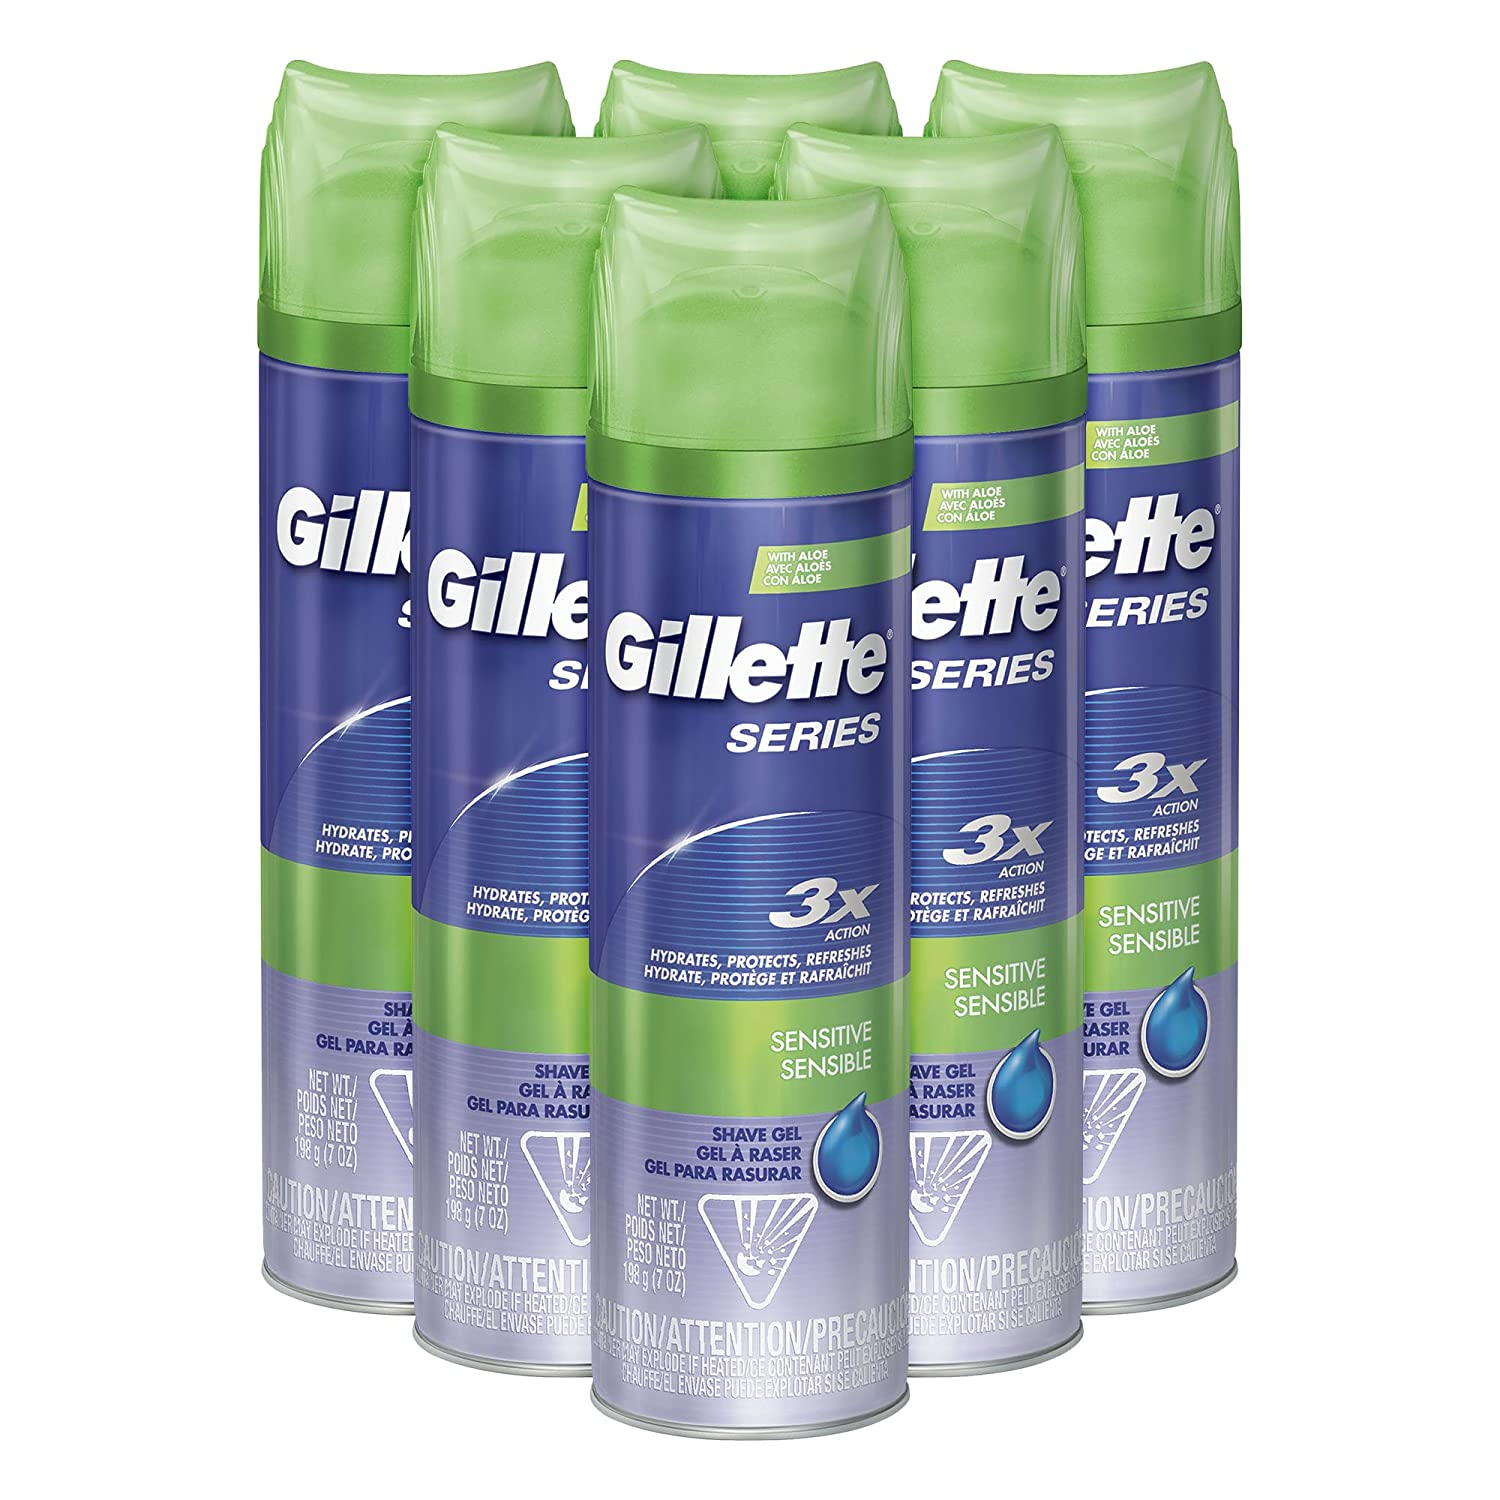 Gillette TGS Series Shave Gel, Moisturizing, 7 Ounce (Pack of 6) P&G NA